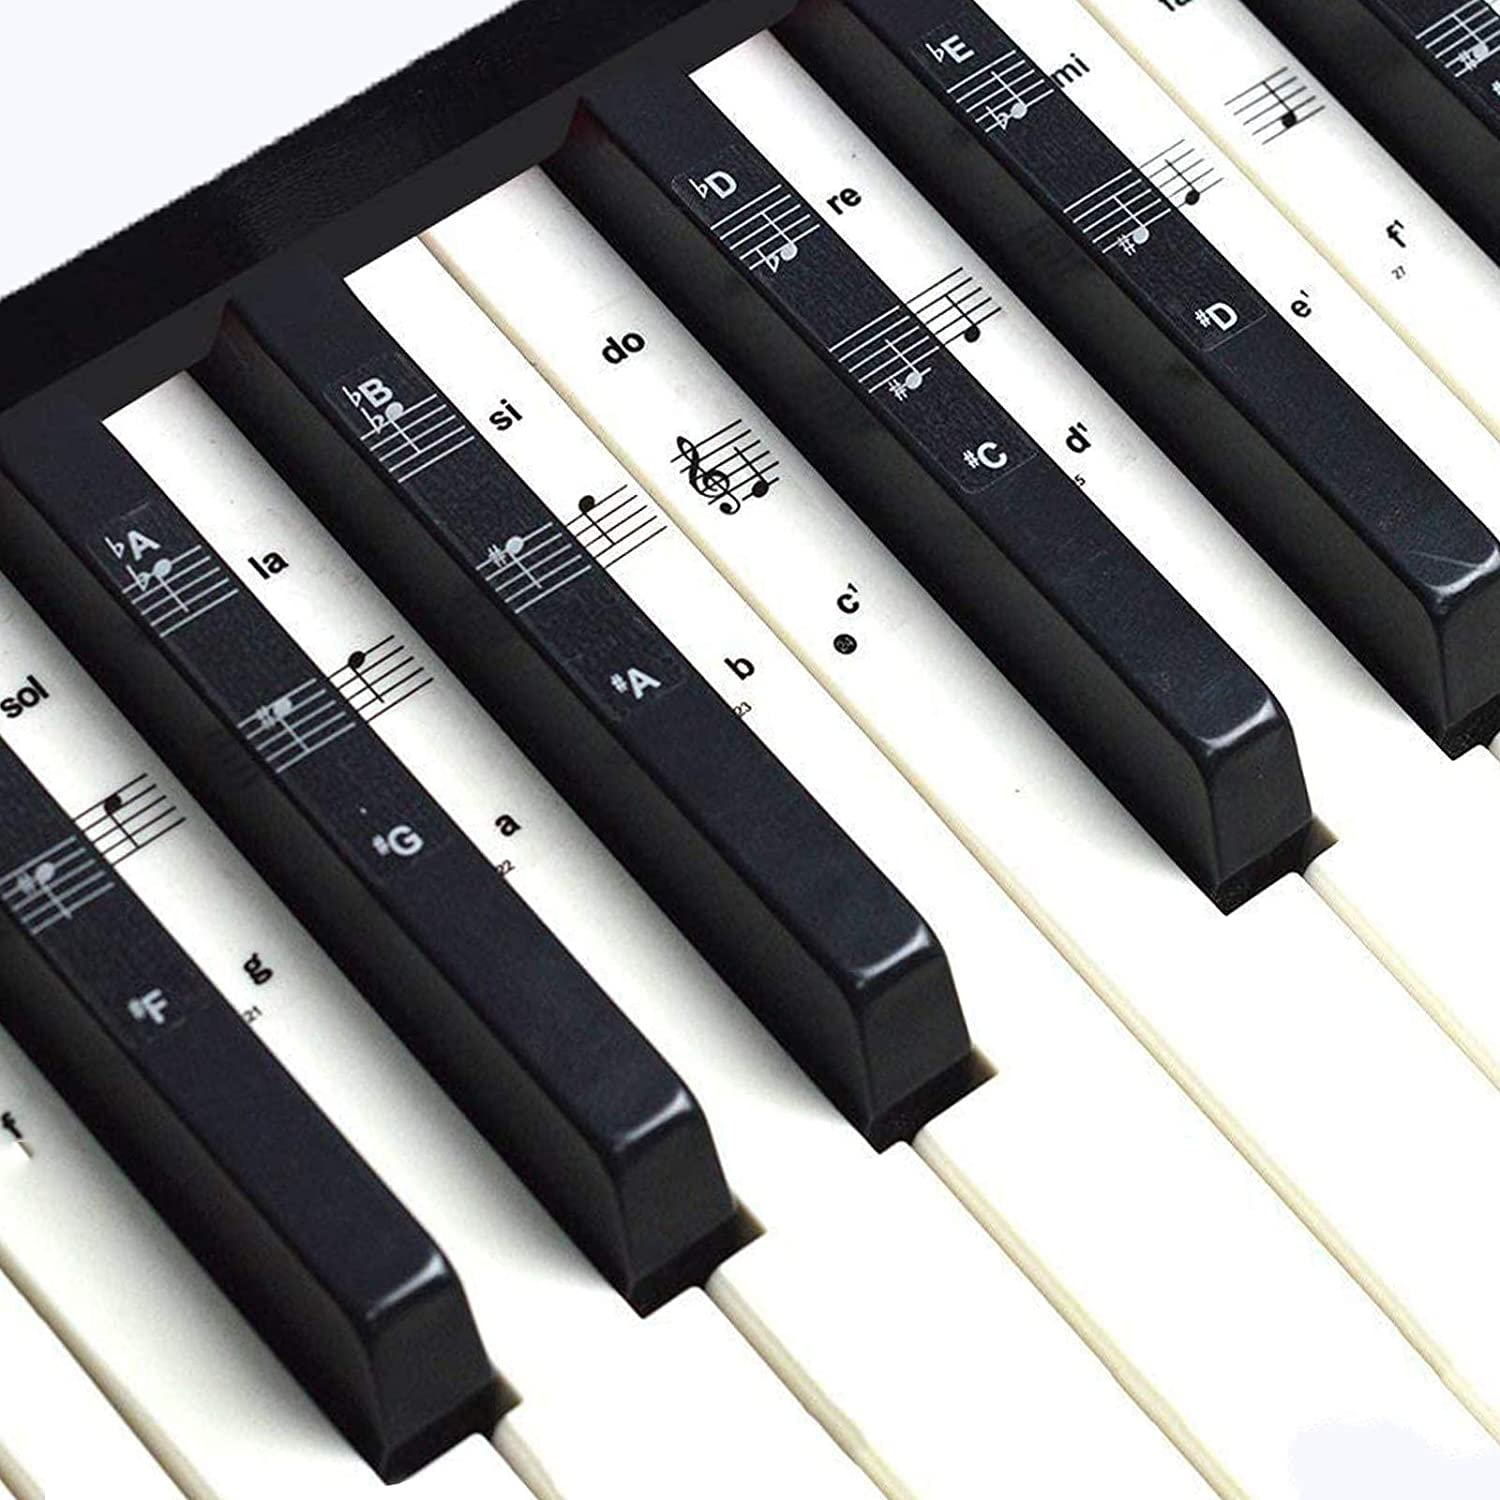 Piano Stickers Piano Keyboard Stickers for Key Transparent Removable Large Letter Piano Stickers Beginners Piano Keyboard Stickers Full Set Black/&White Keys for 49//61//76//88 Keyboards